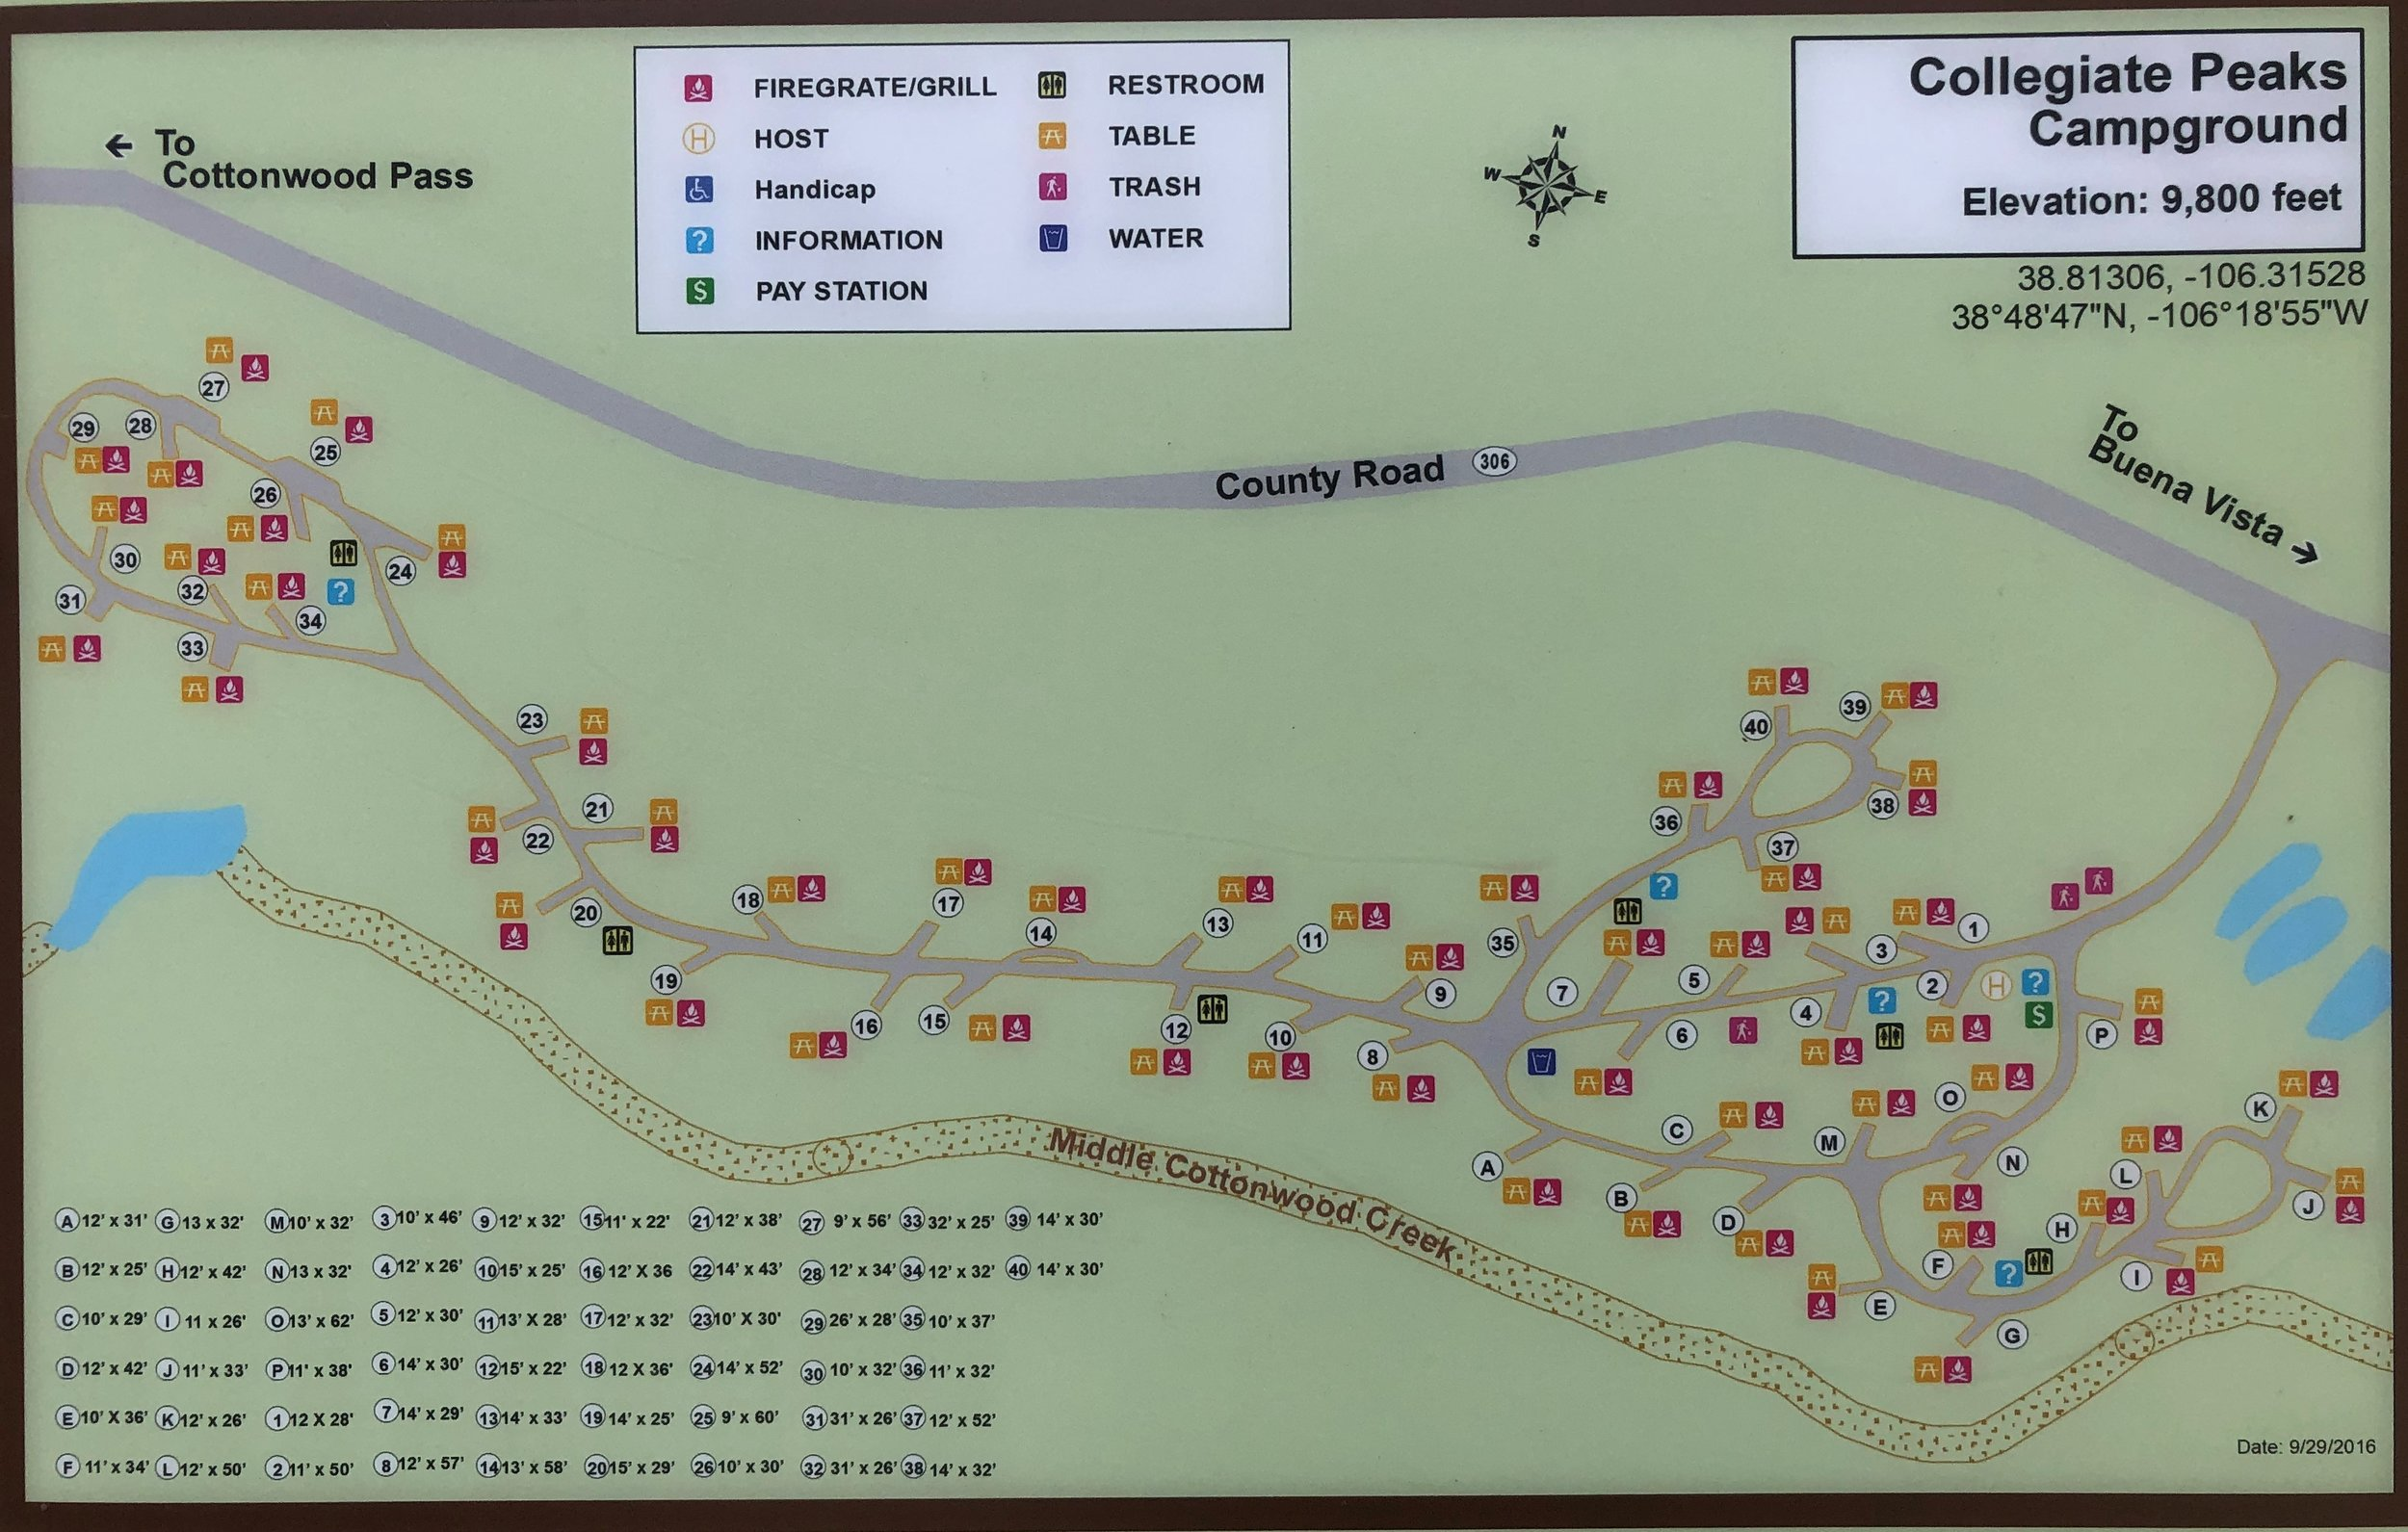 Collegiate Peaks campground map - Click to enlarge